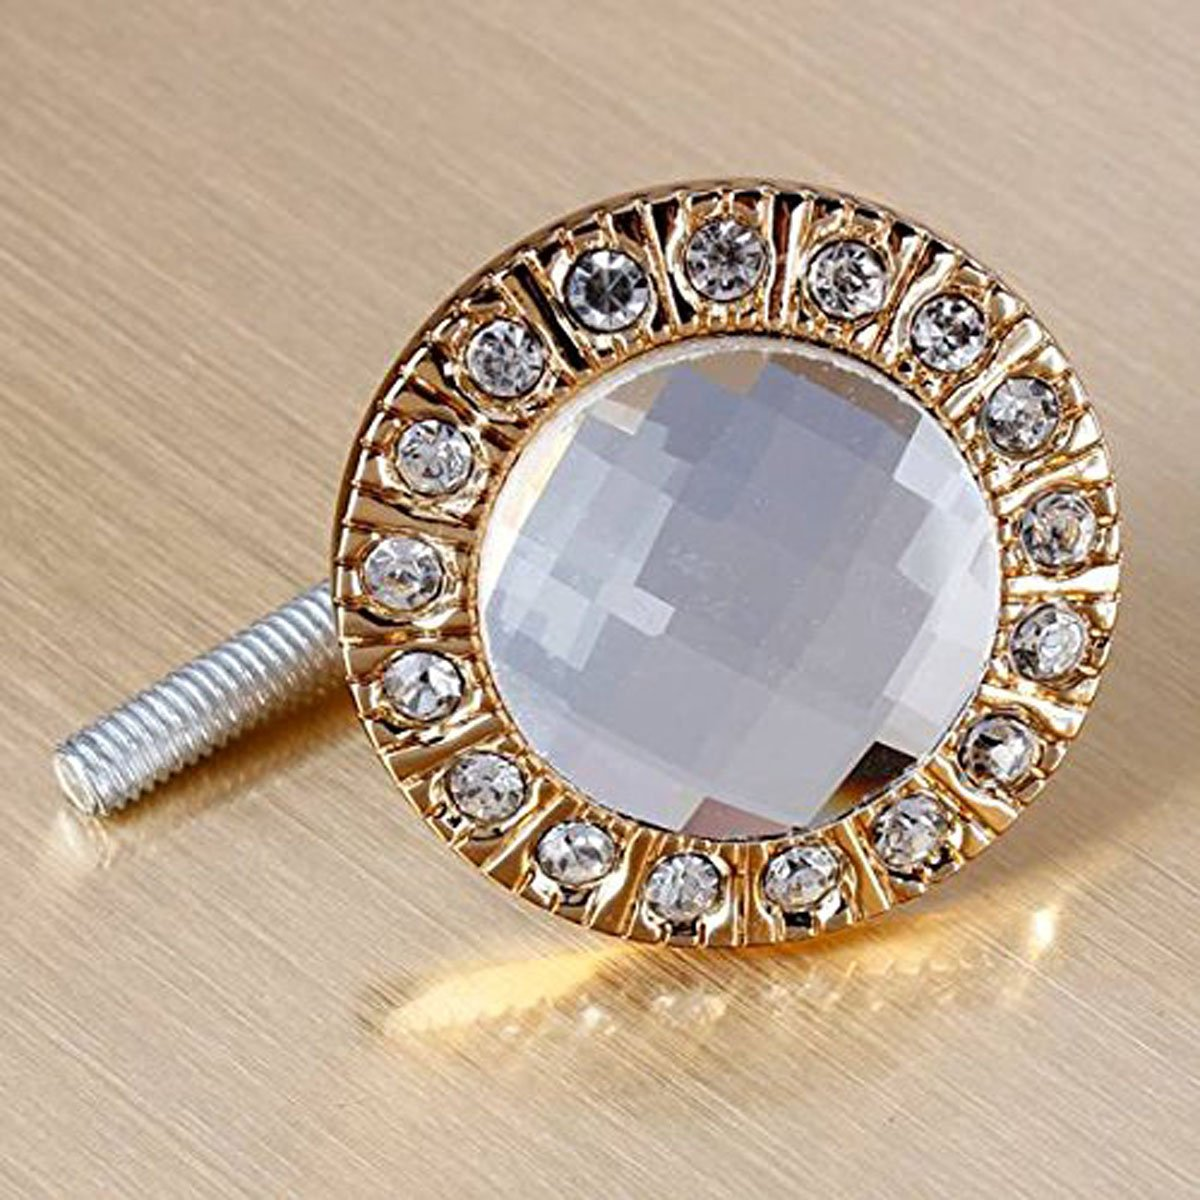 SODIAL(R)1pcs Crystal Glass Clear Round Pull Handle Glittering Rhinestone Knob for Cupboard Drawer Gold by SODIAL (Image #2)